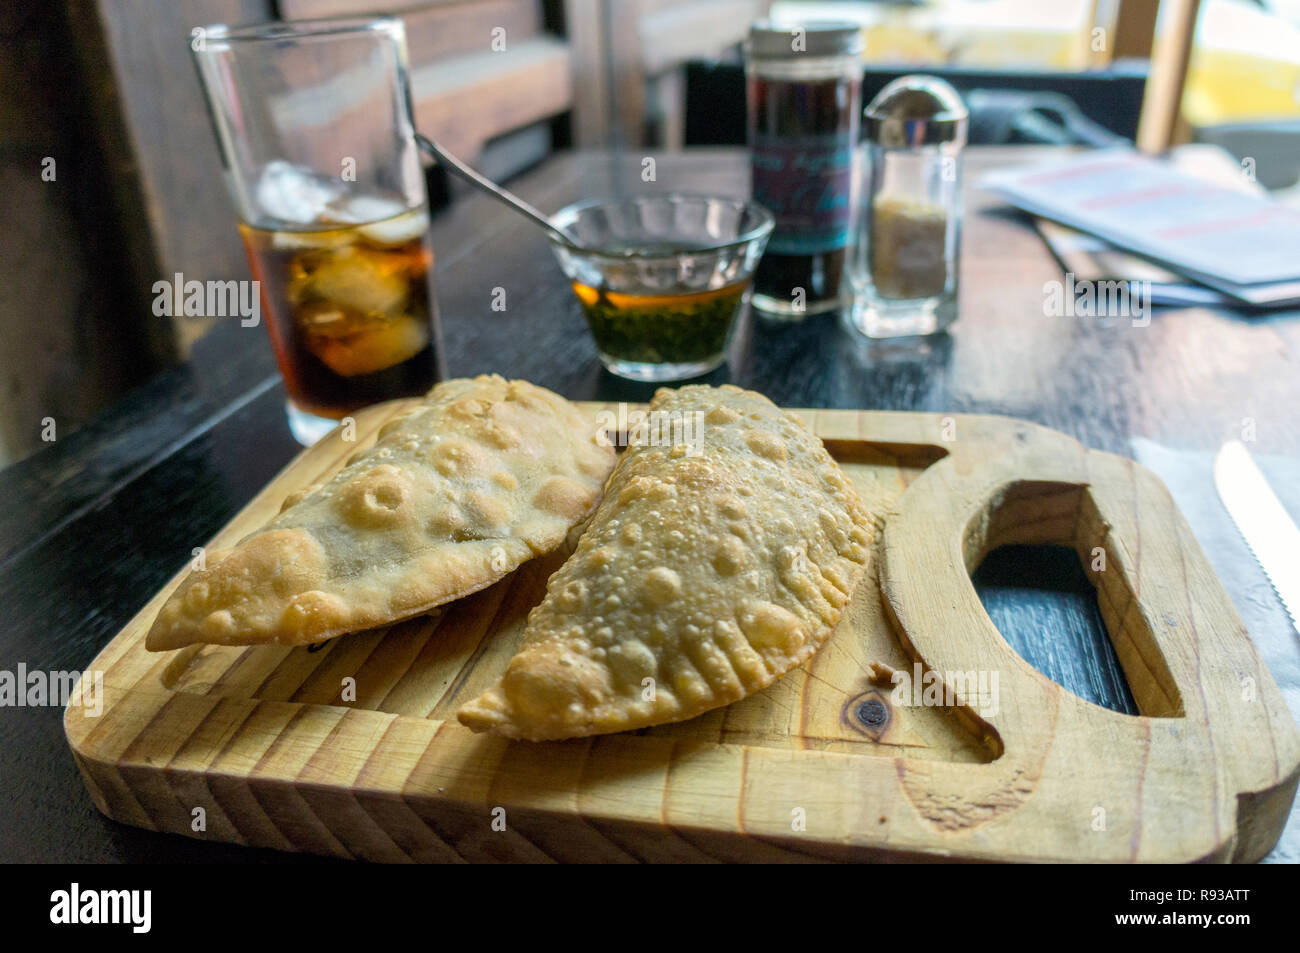 Mexican Food, Latin American, Traditional baked pastry Empanadas with meat Stock Photo